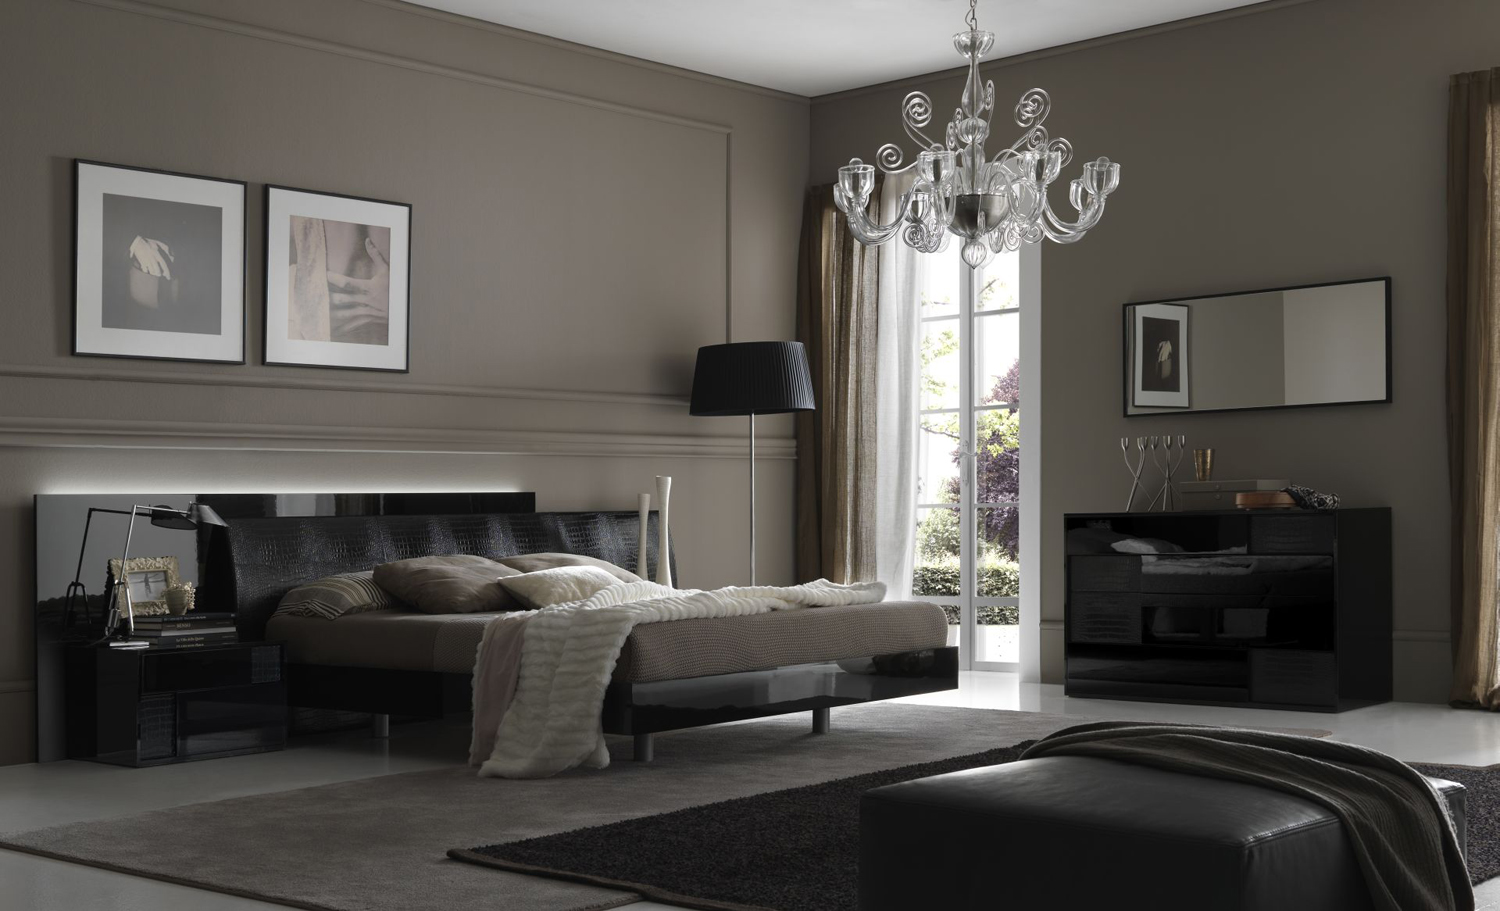 Bedroom decorating ideas from evinco for New bedroom design